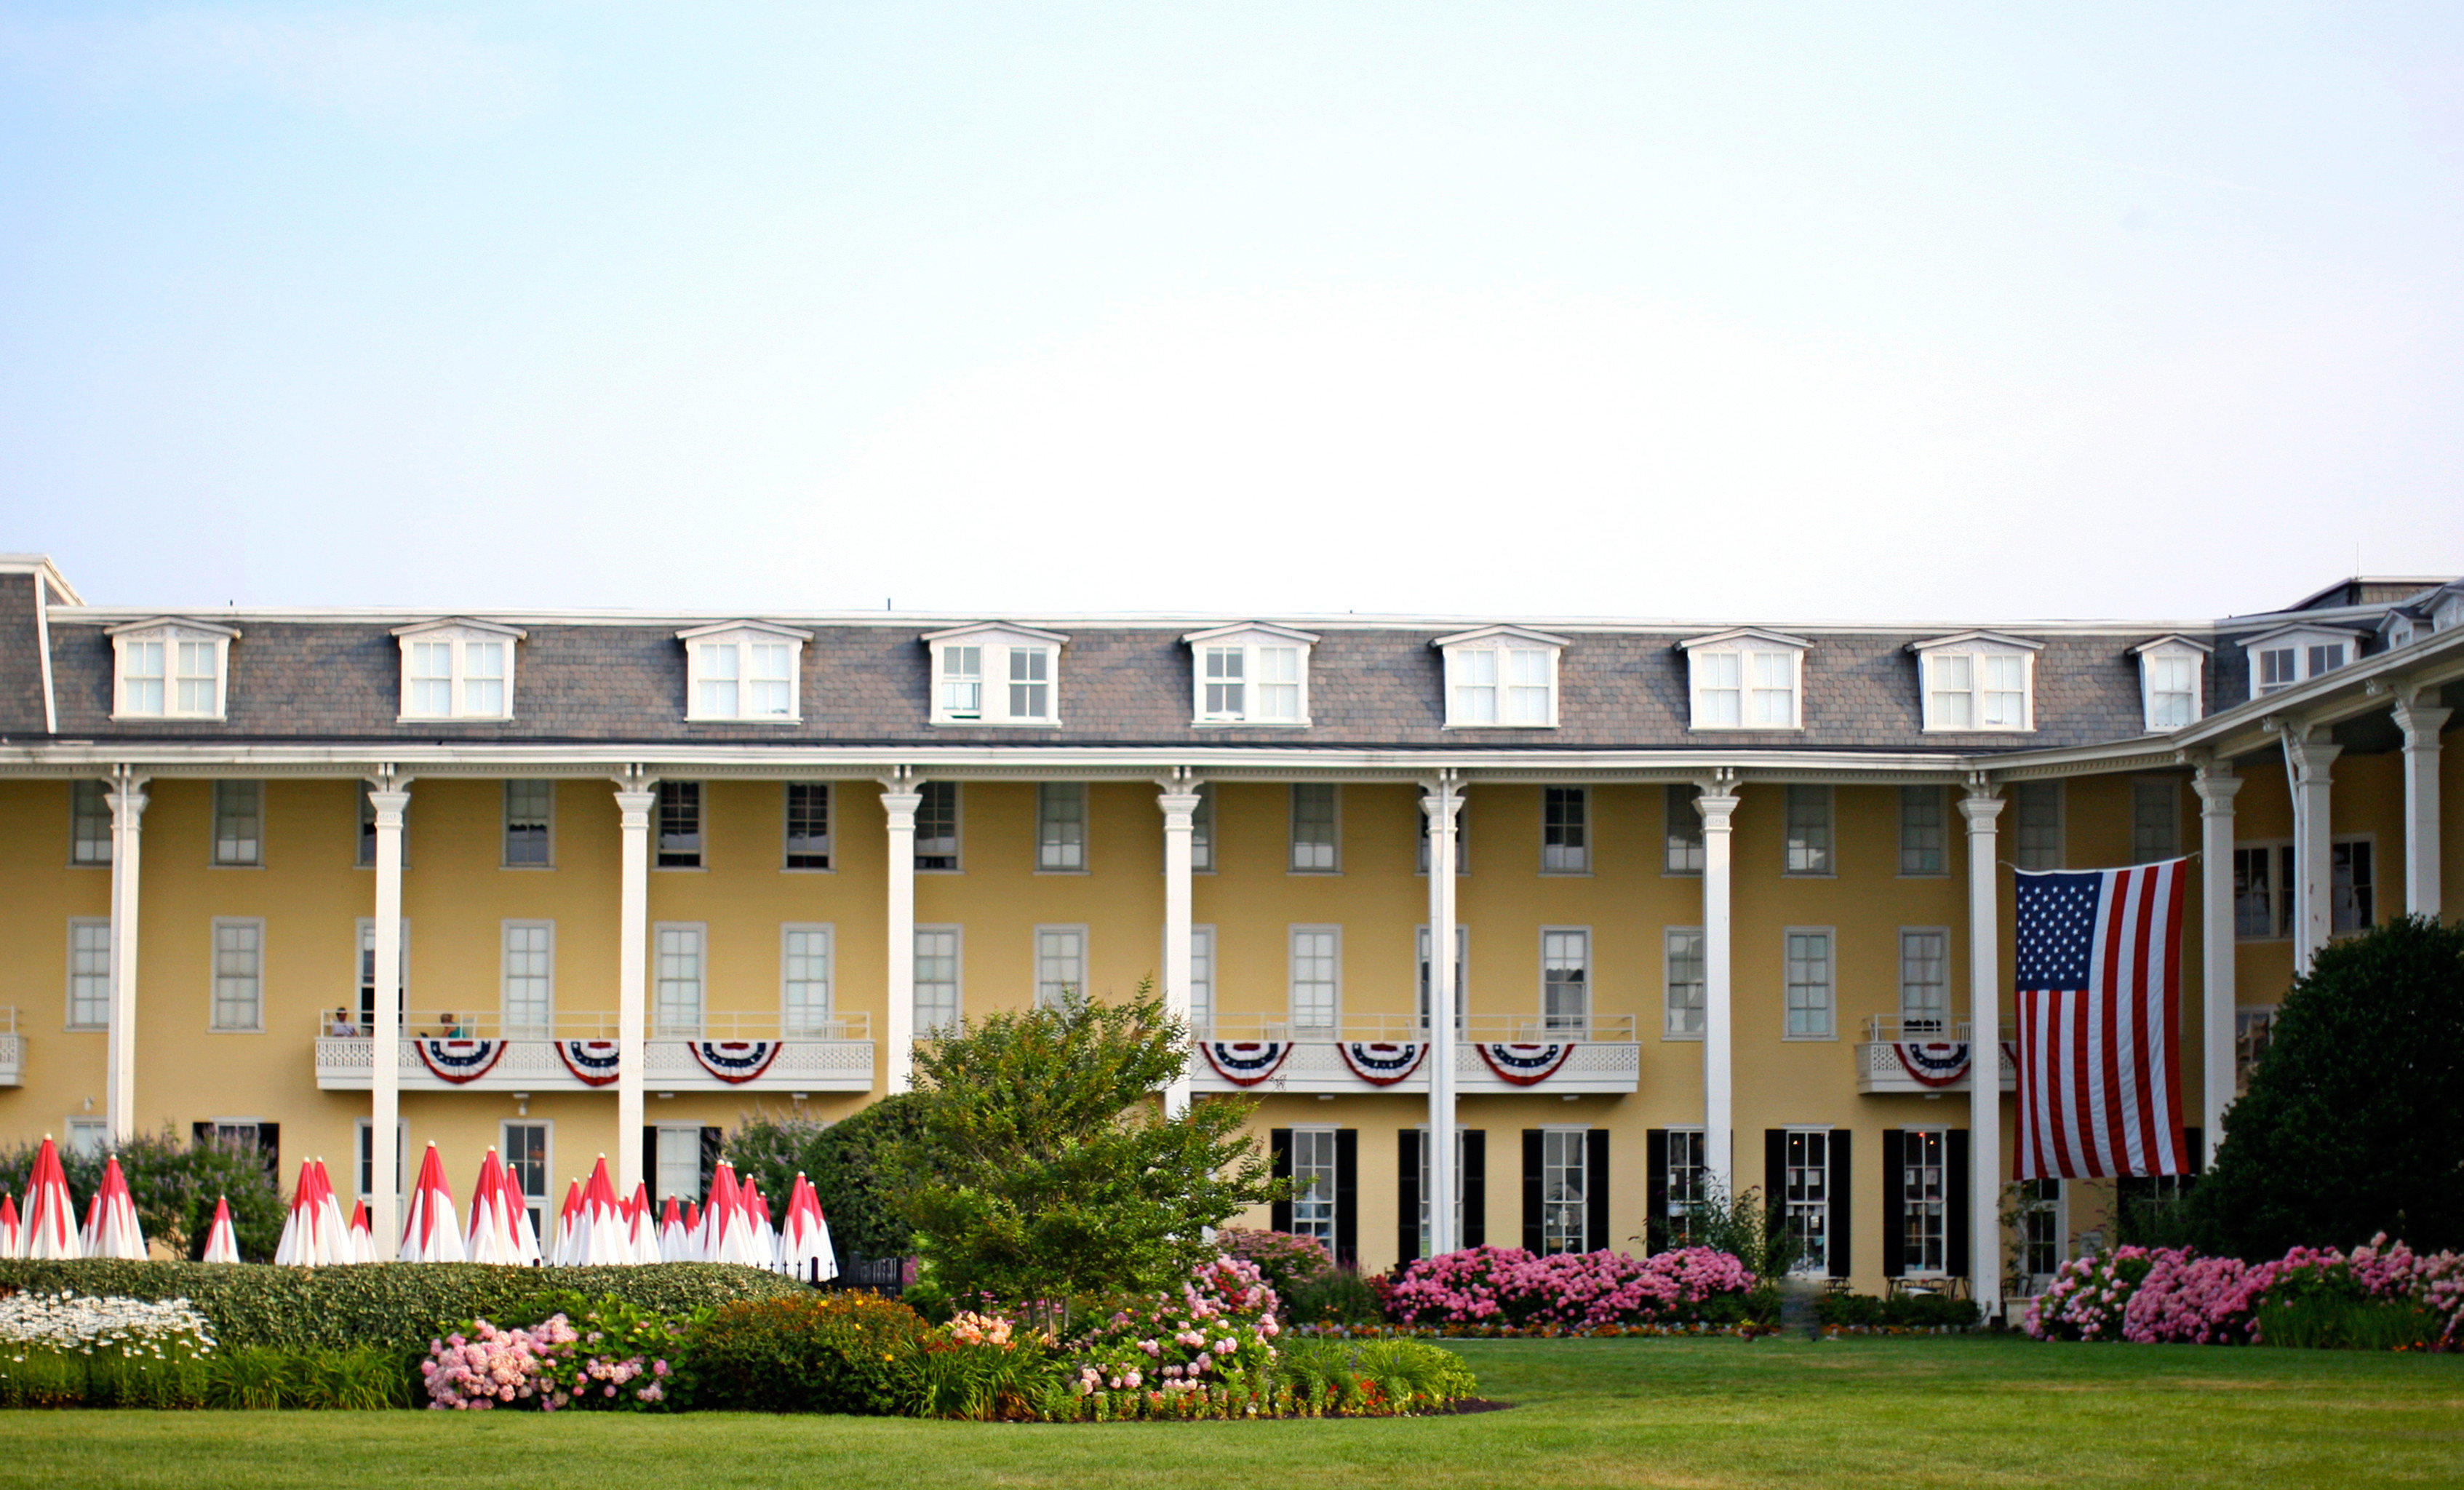 Exterior Grounds Historic sky grass building Architecture house flower palace school home campus university colonnade